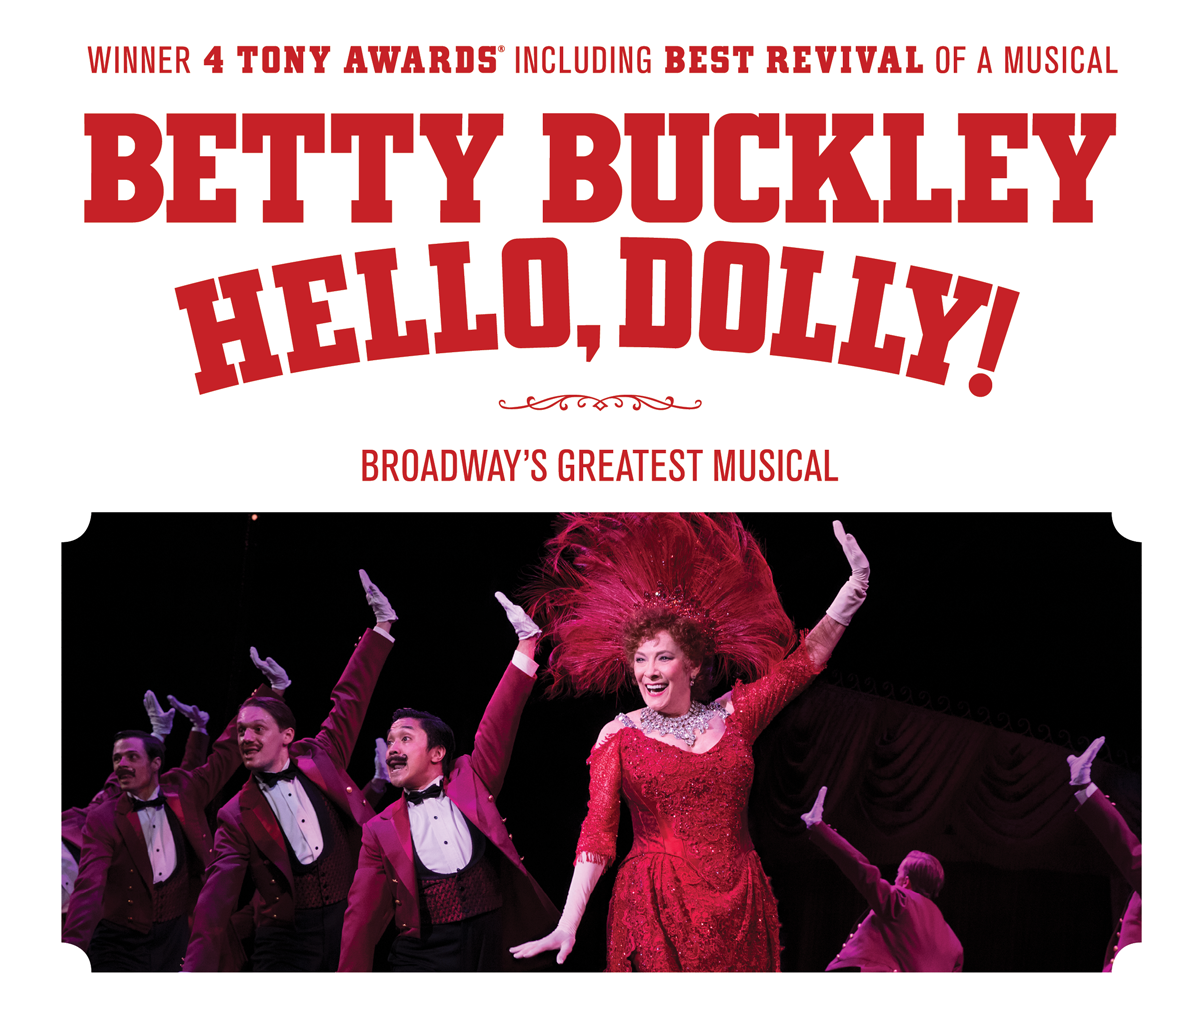 Winner 4 Tony Awards including Best Revival of a Musical. Hello, Dolly! starring Betty Buckley. Broadway's Greatest Musical